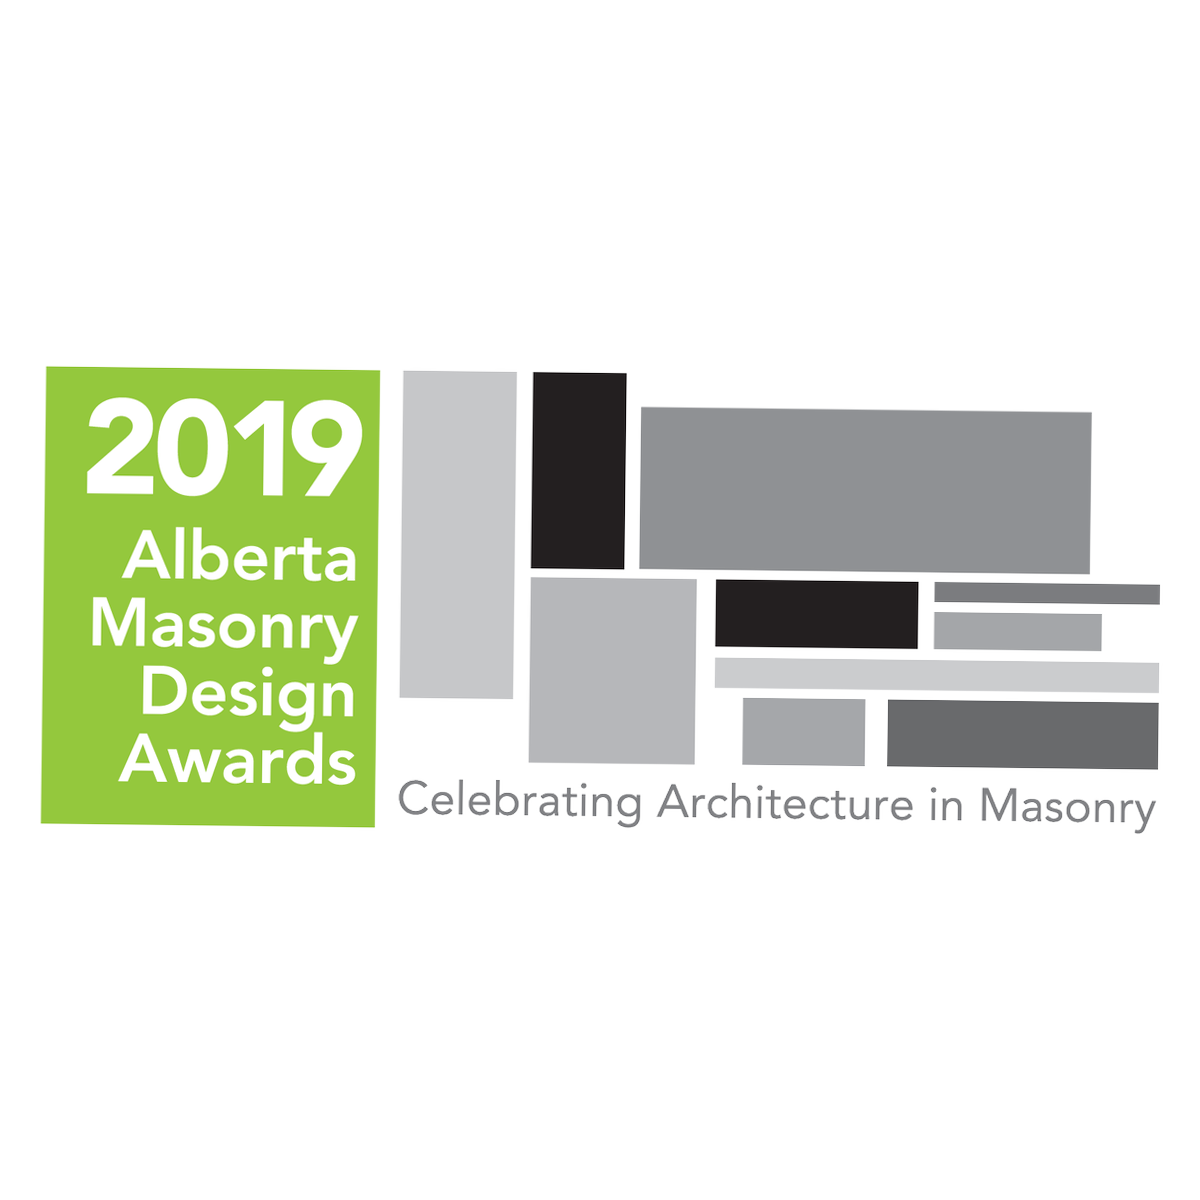 Alberta Masonry Design Awards - April 2019  Recipients of awards in three categories: ' AMC Presidential Award', 'Award of Merit', 'Honorable Mention'